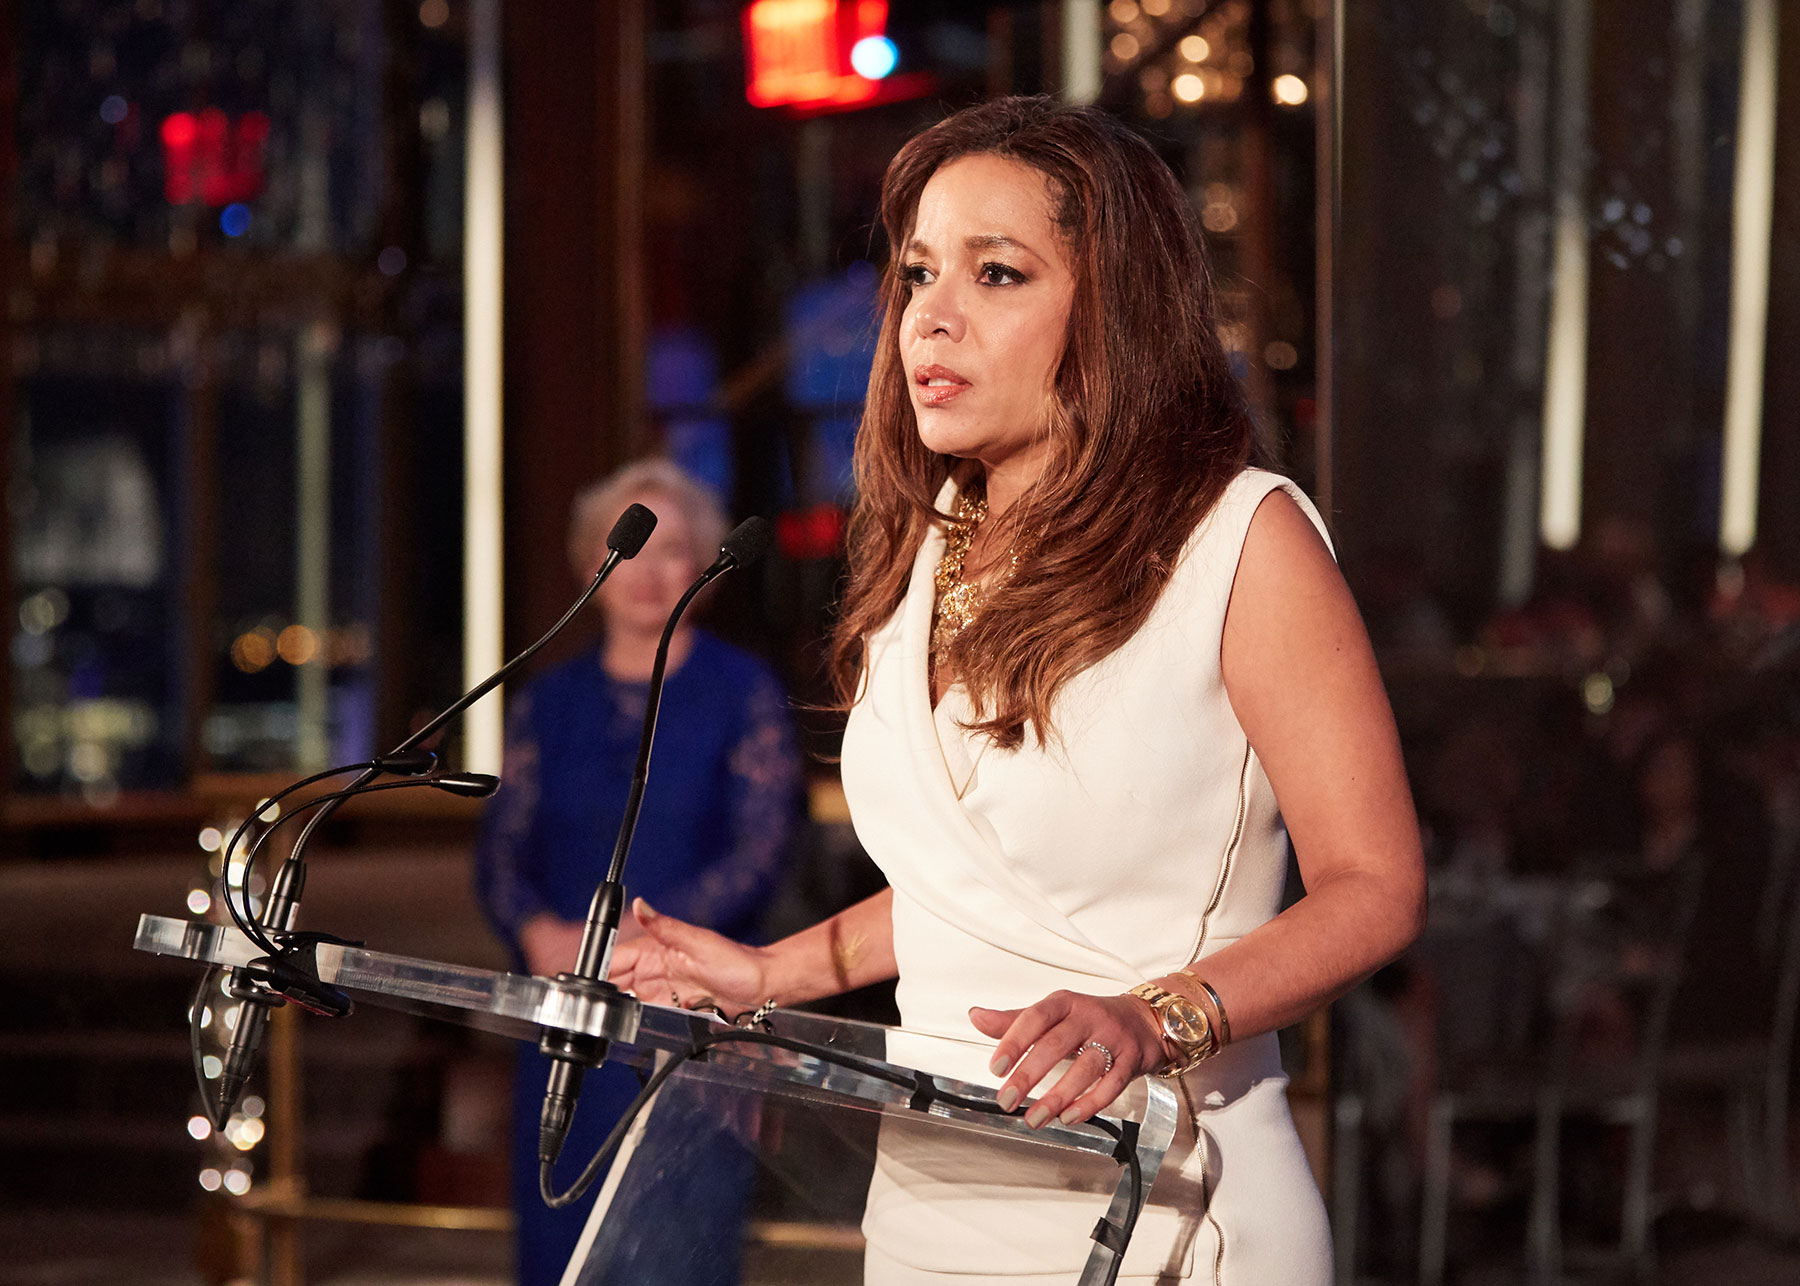 Sunny Hostin speaks at the podium at the EOP 50th Anniversary Benefit dinner in NYC.